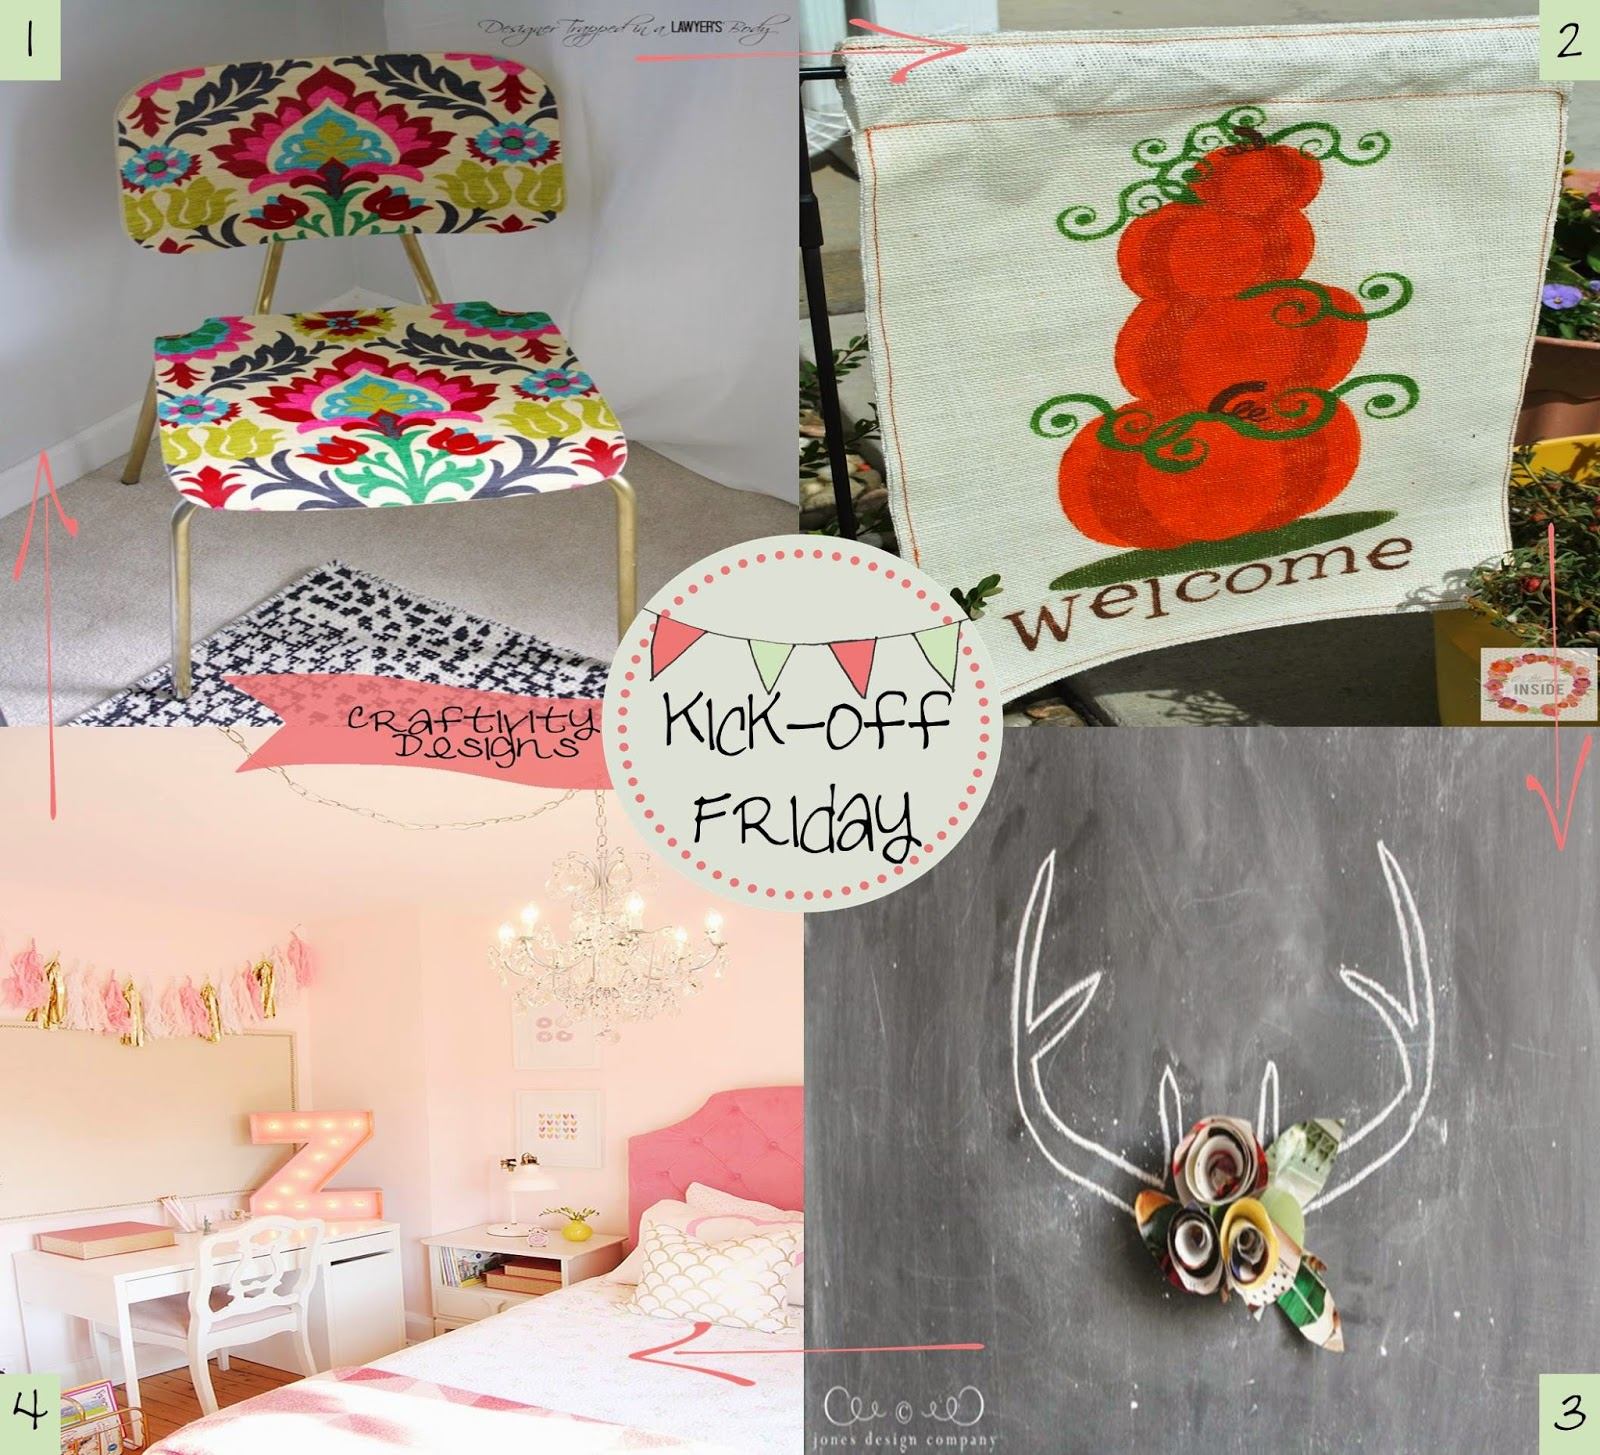 3 Great Swift Y And Thrifty Diy Decorating Ideas: Craftivity Designs: Kick-Off Friday